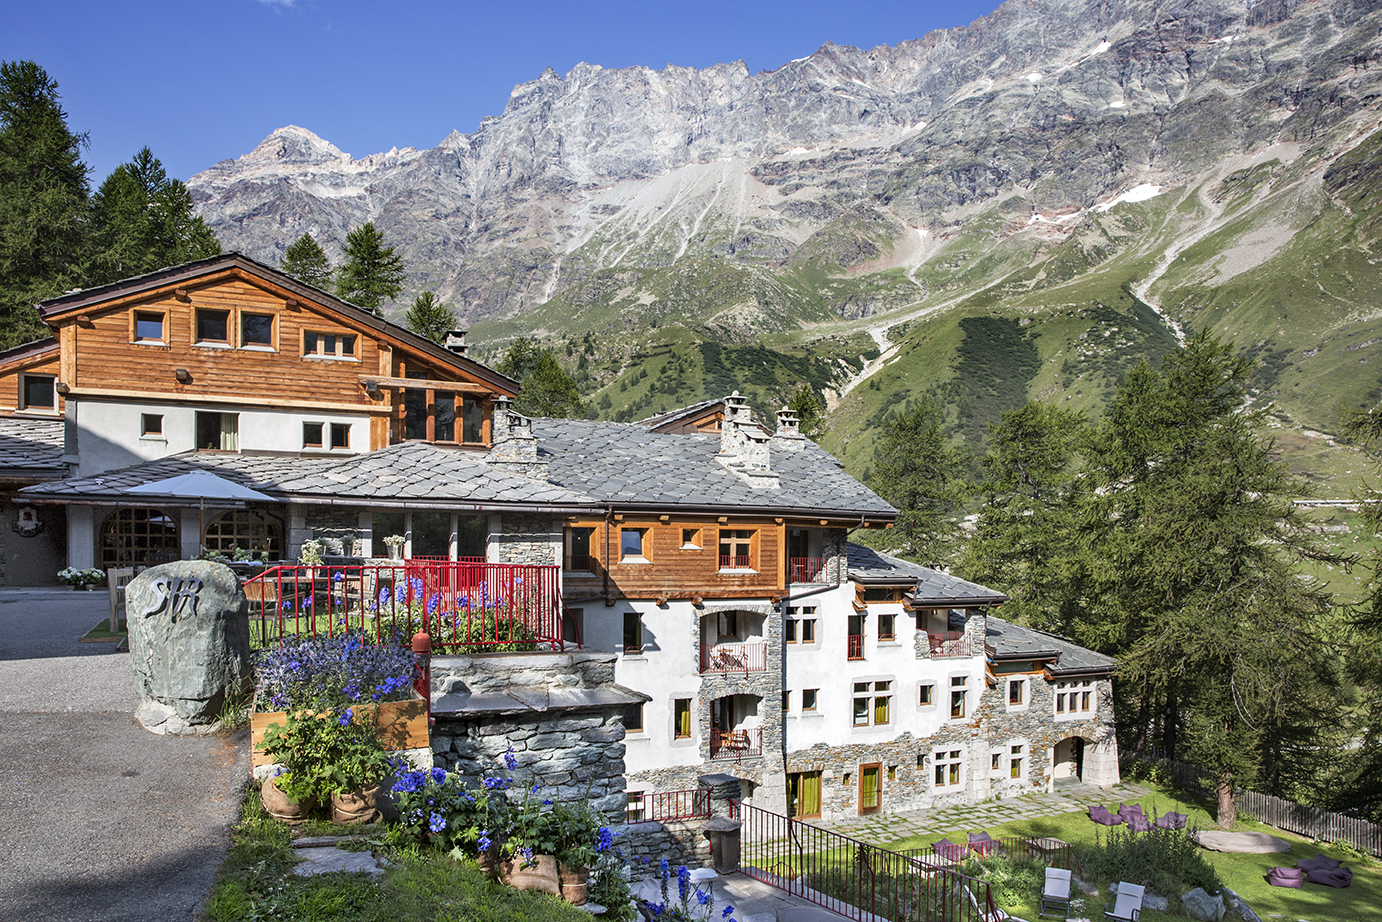 Saint Hubertus Resort Luxury Hotel and Spa, Cervinia, Italy